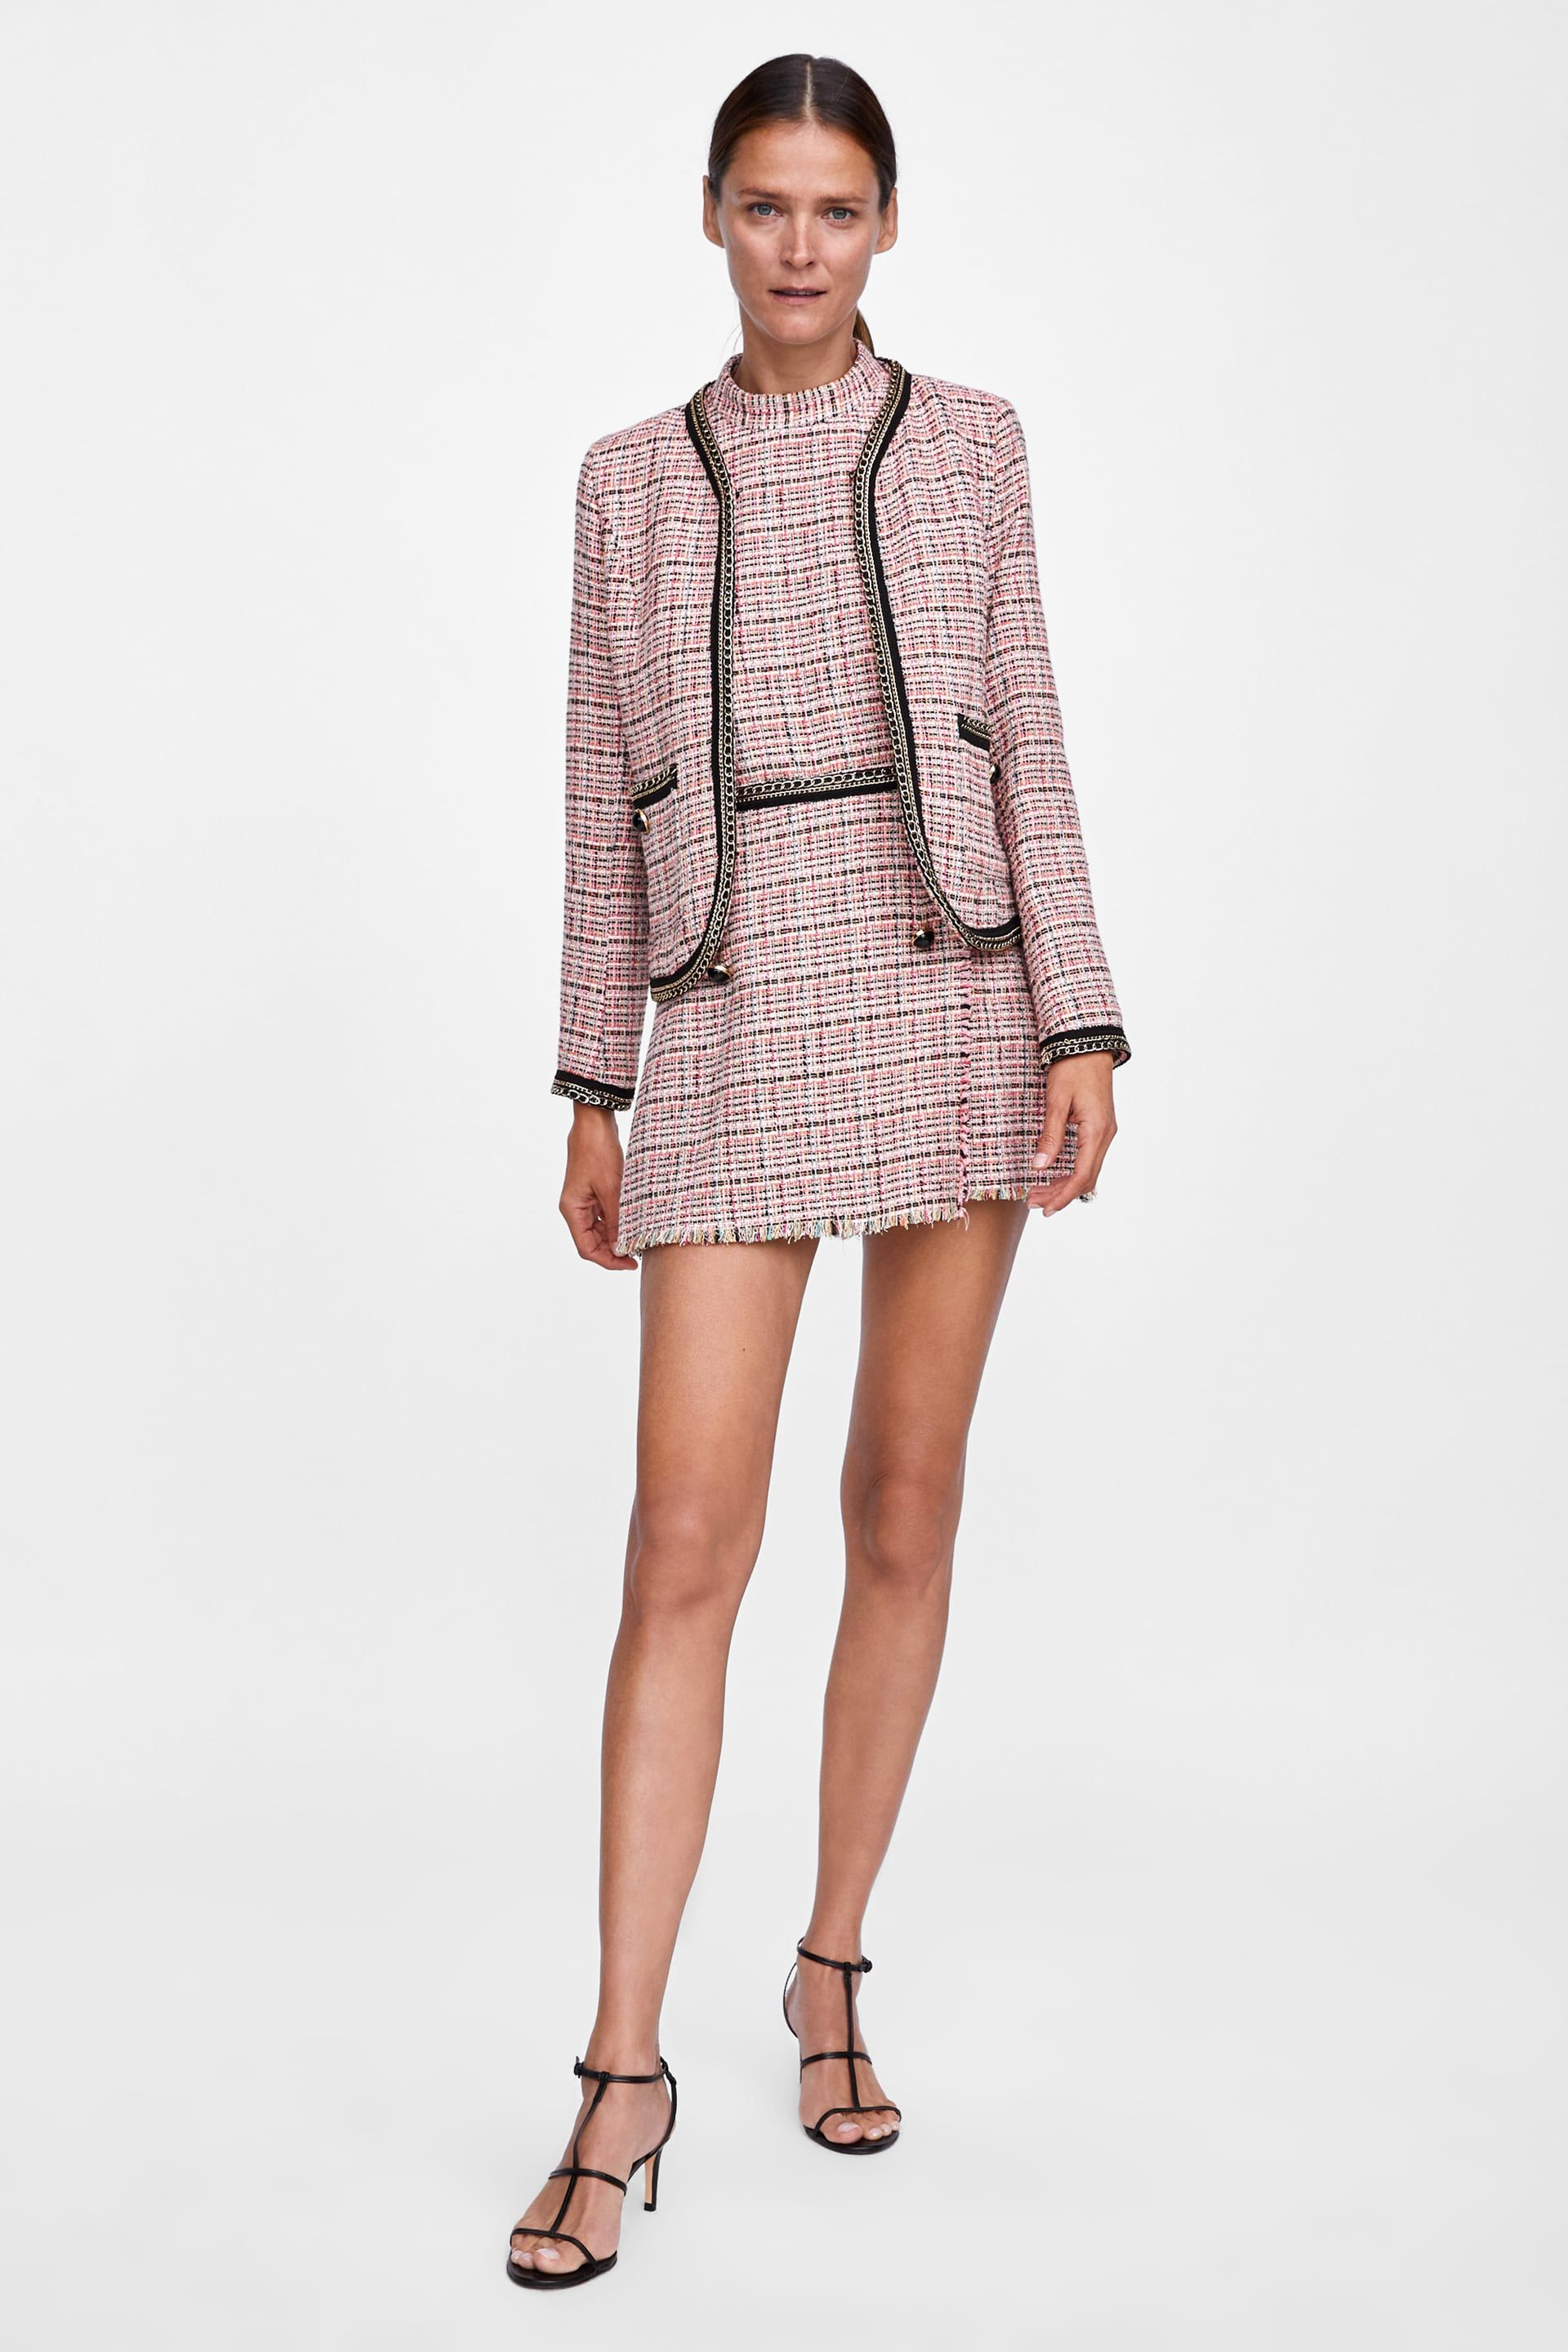 a0c0a953e0e2 BLAZER TWEED CADENAS in 2019 | The Edit | Fashion, Tweed blazer, Zara